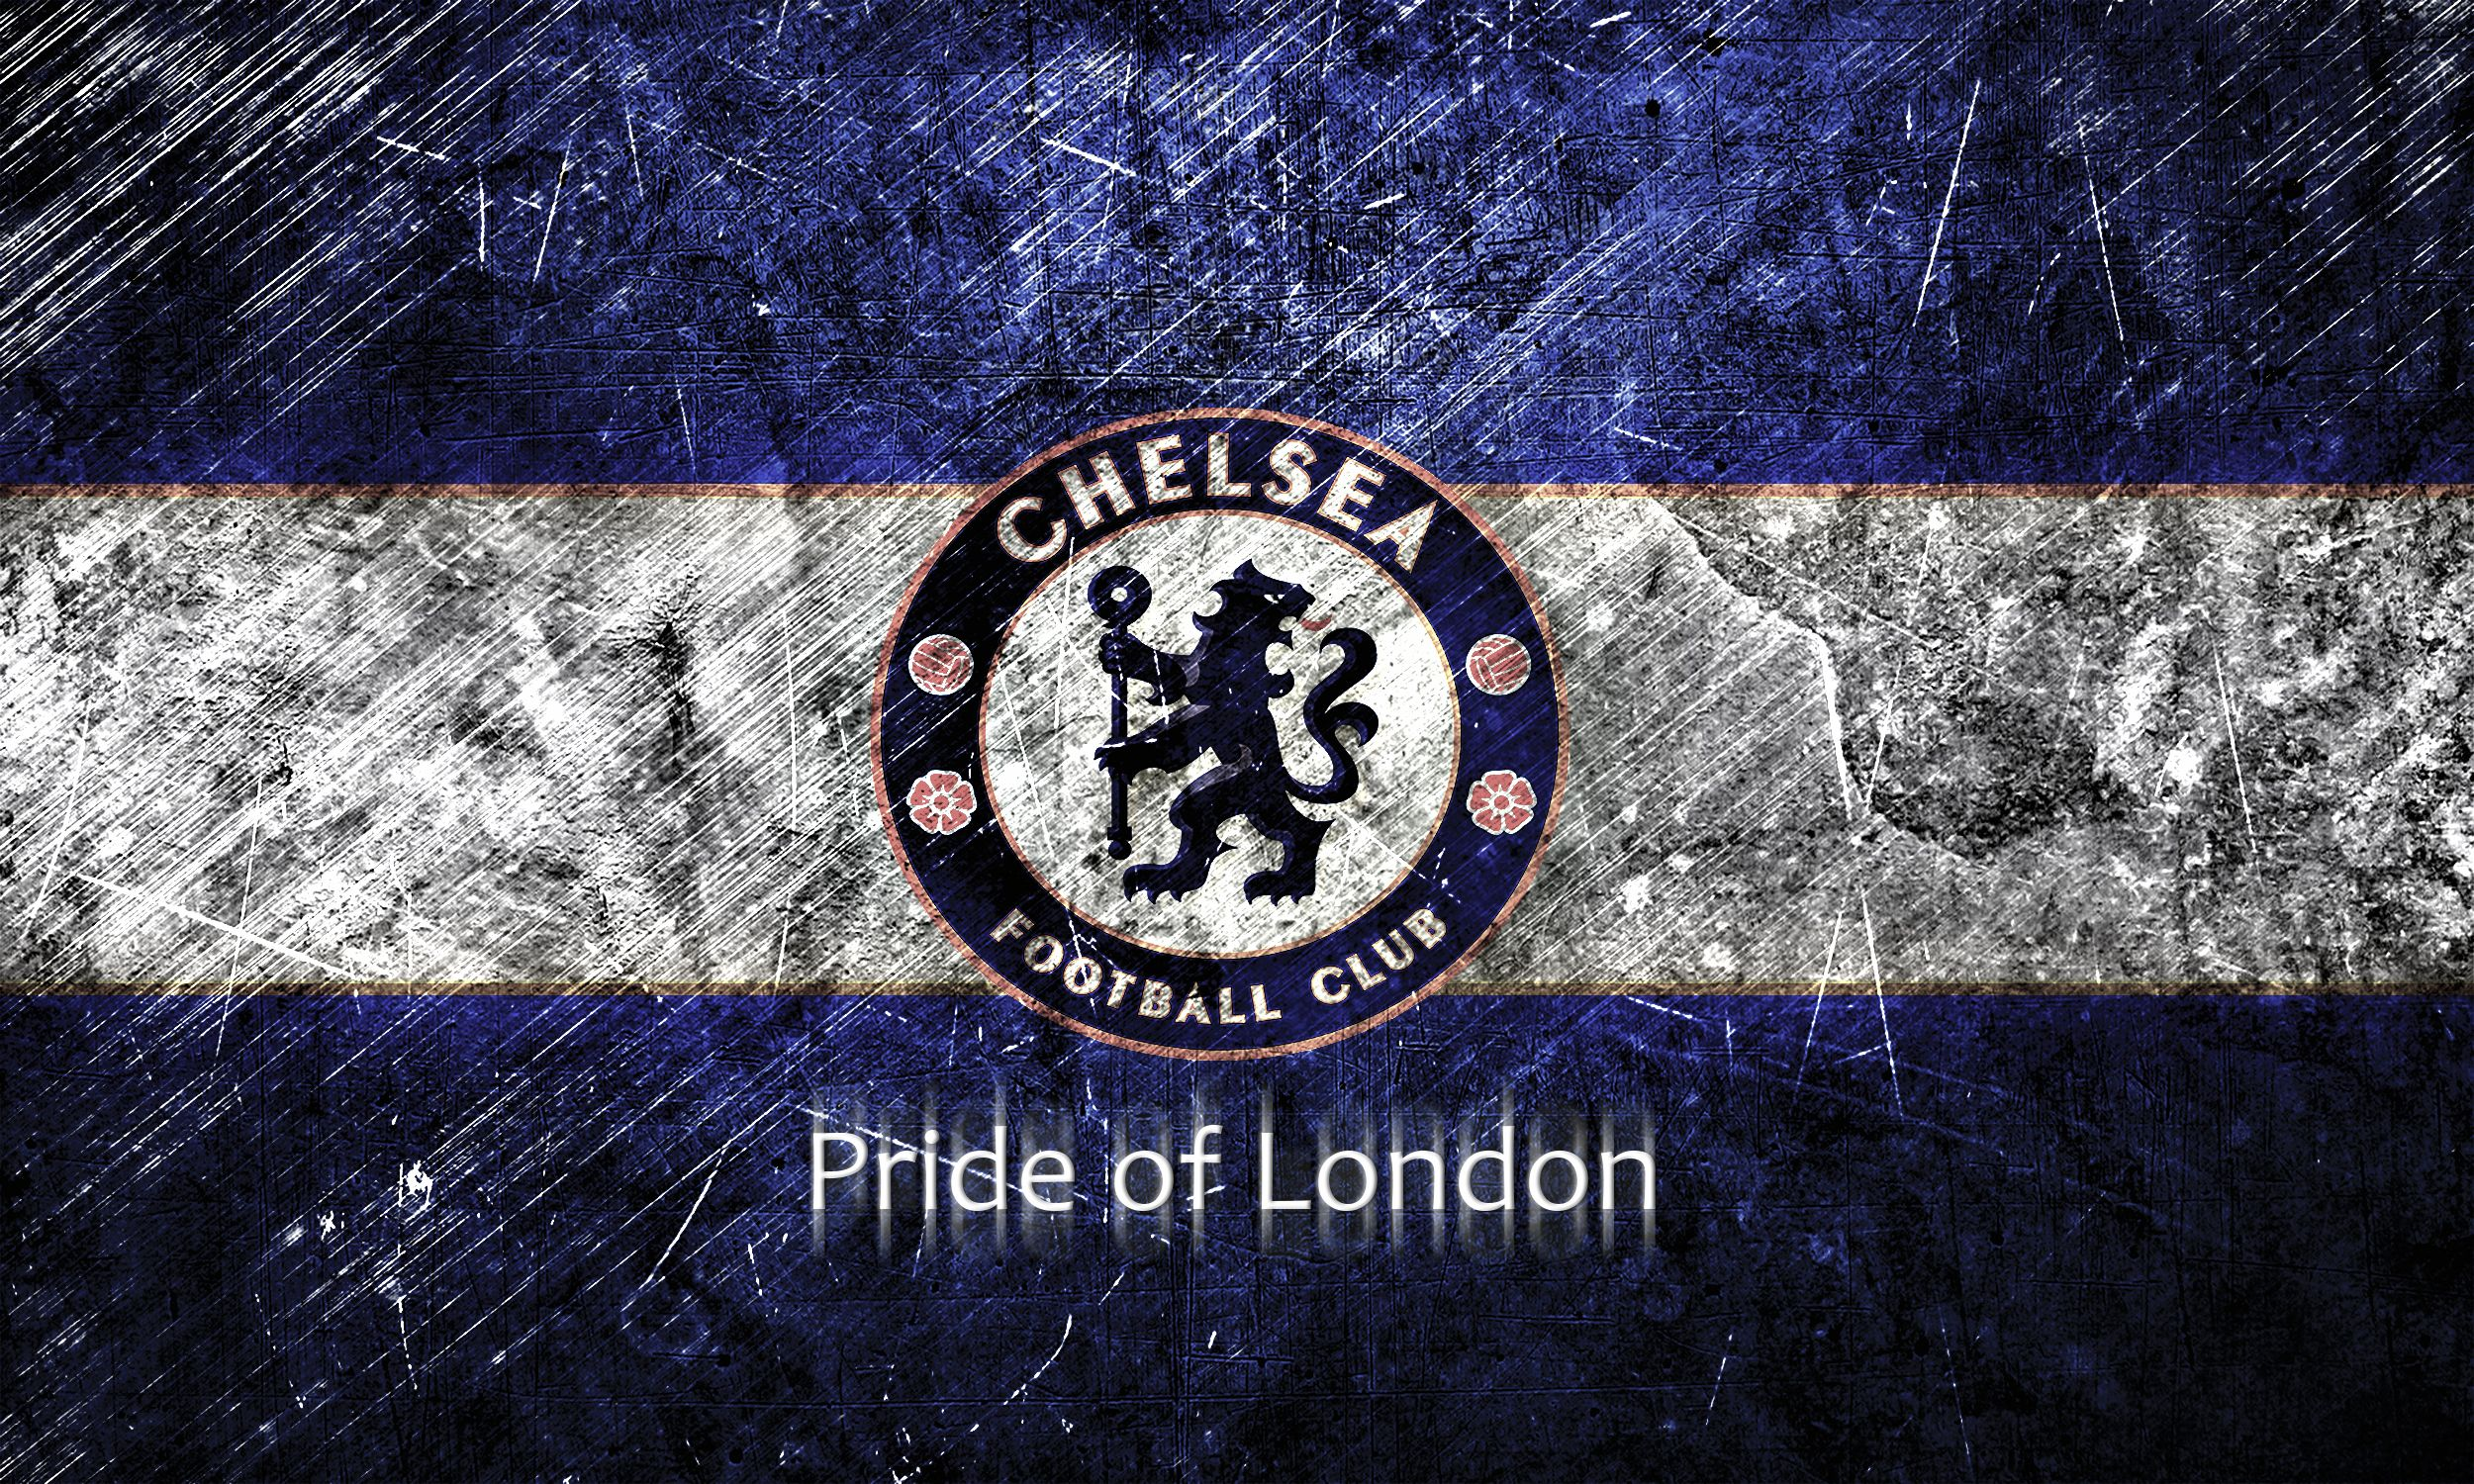 Chelsea Blue White Scratches Wallpapers   2500x1500   5027496 Do 2500x1500